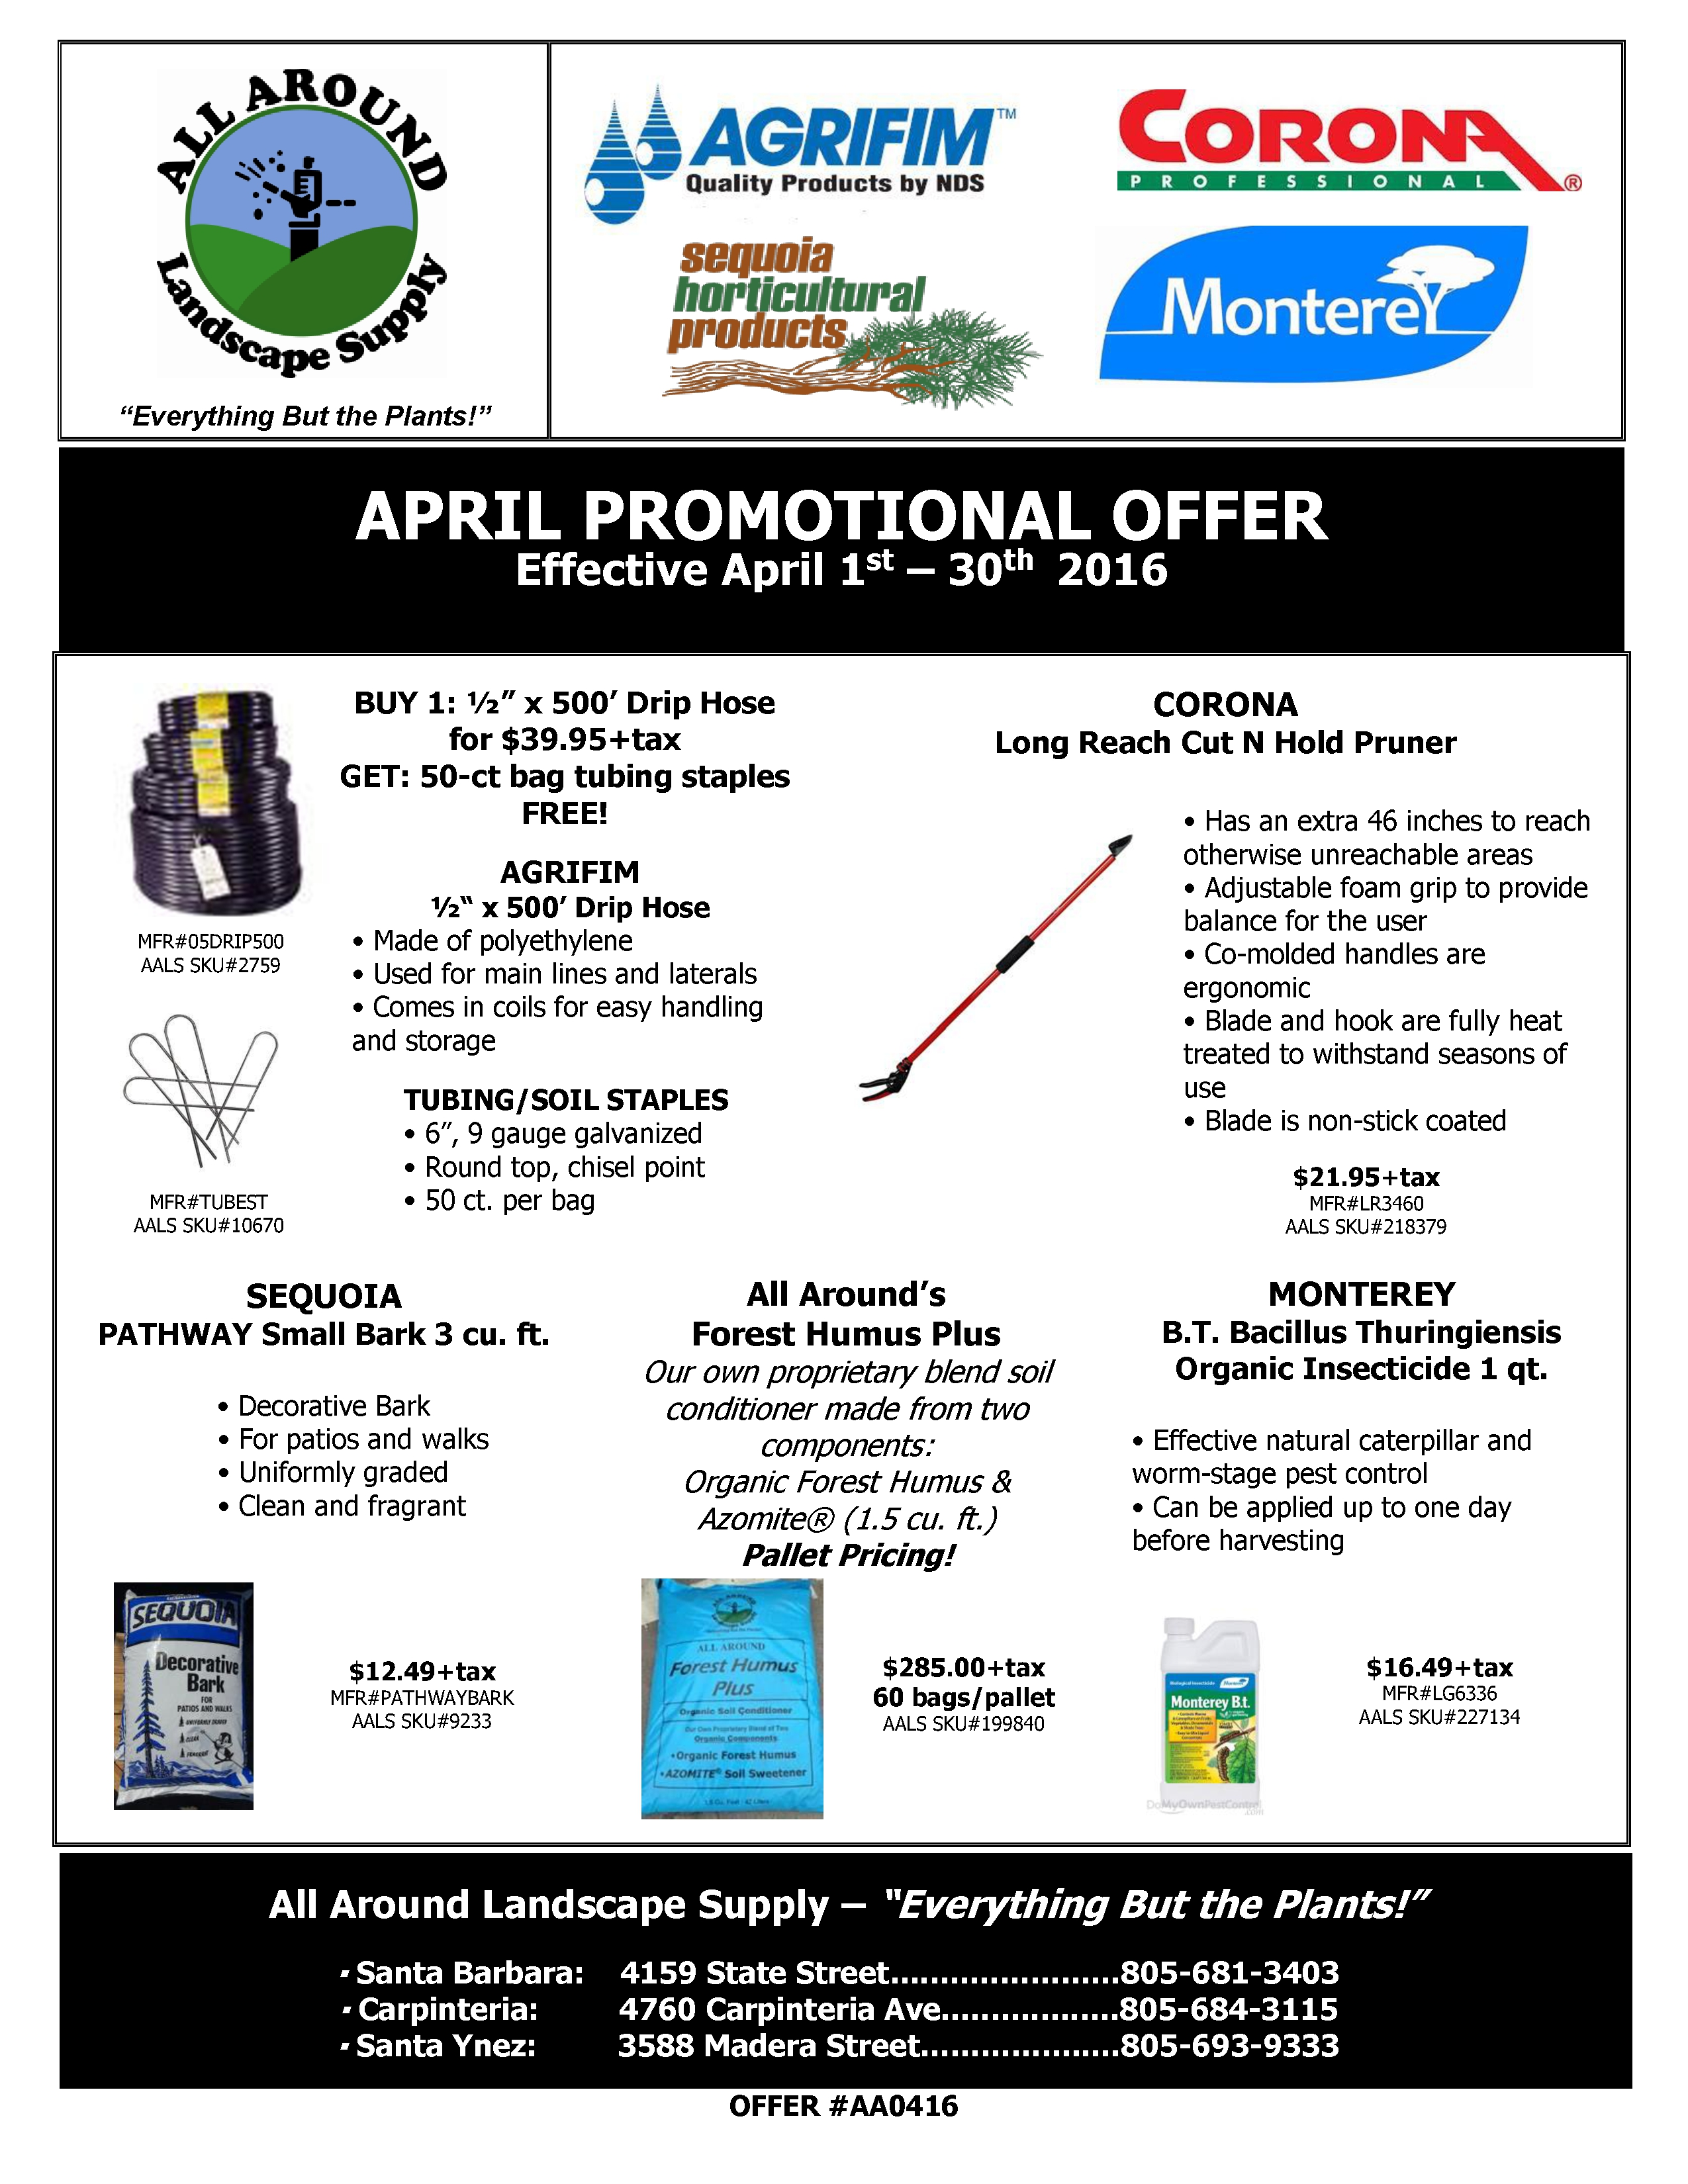 All Around Landscape April 2016 Promotions